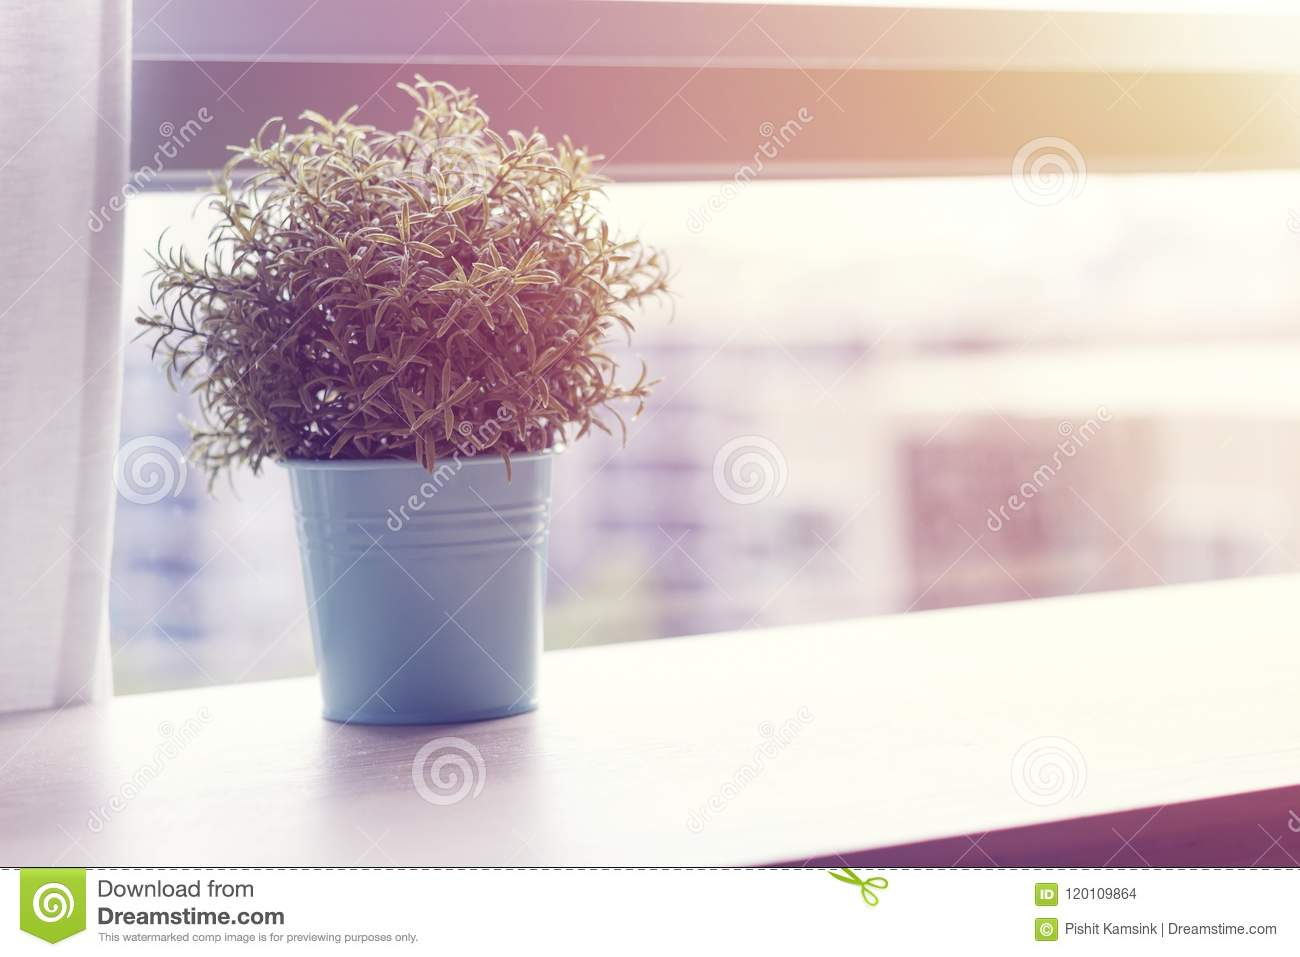 Wooden table with small green plant in pots on window